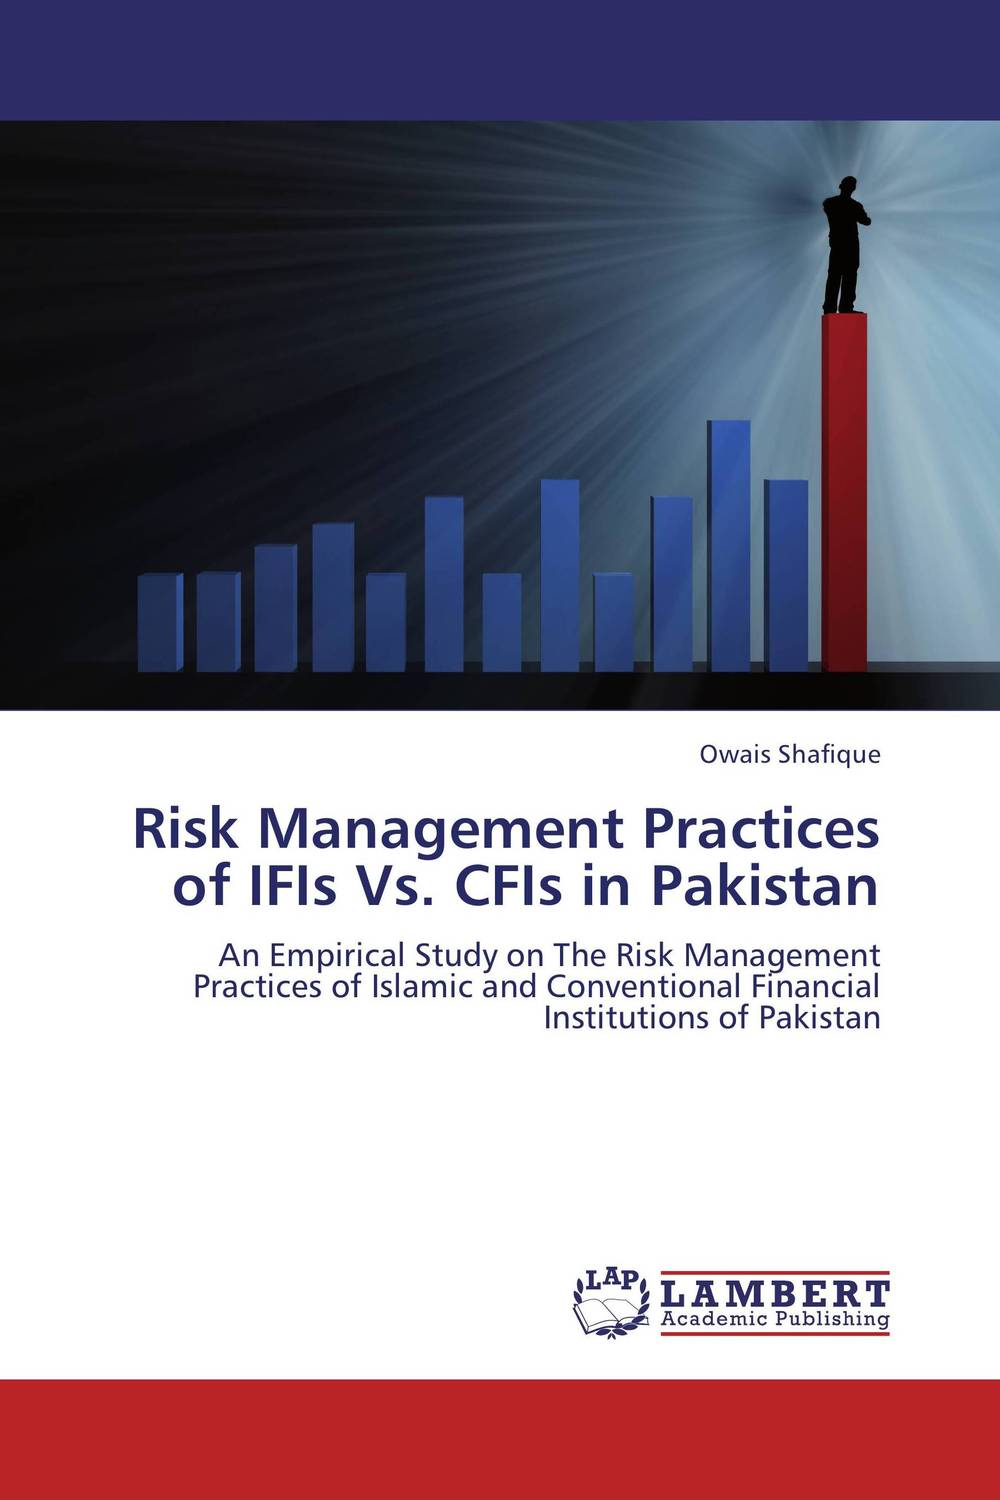 Risk Management Practices of IFIs Vs. CFIs in Pakistan kenji imai advanced financial risk management tools and techniques for integrated credit risk and interest rate risk management